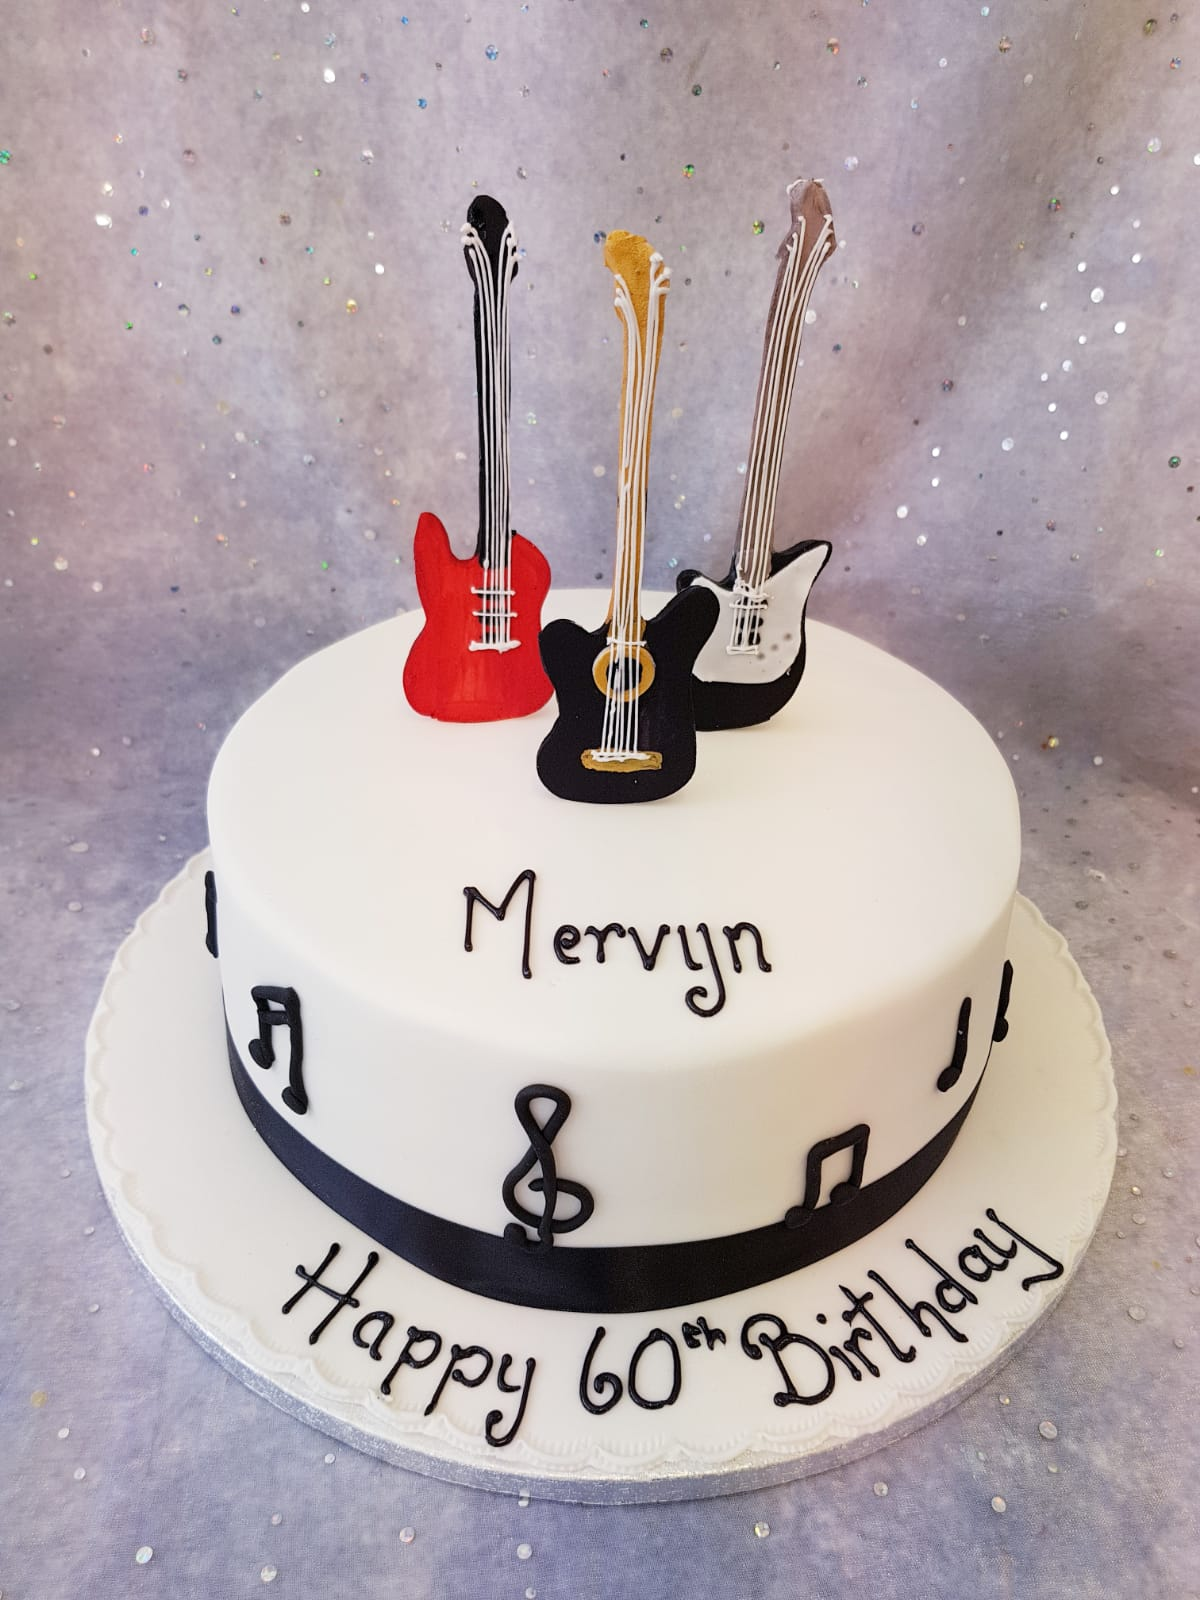 Guitar Theme Cake Ravens Bakery Of Essex Ltd